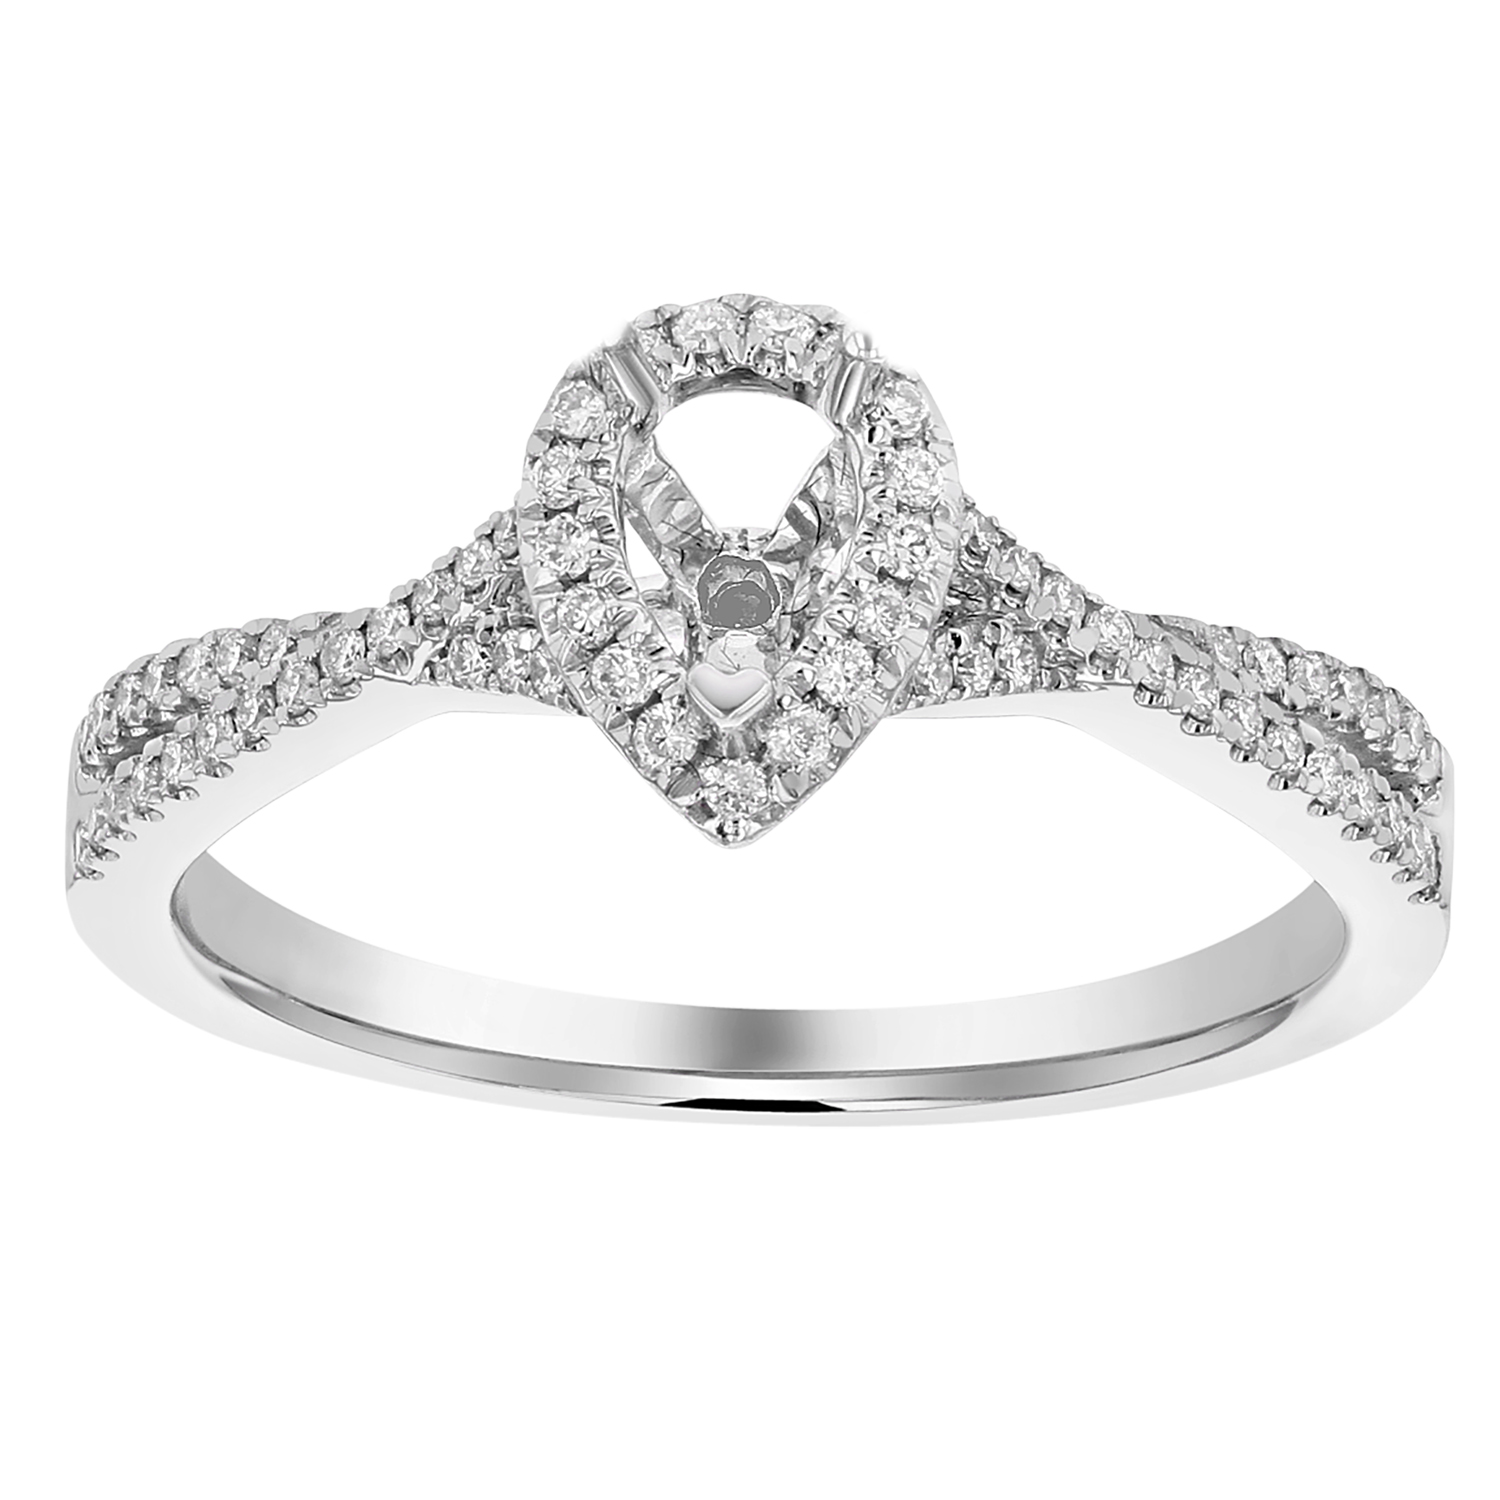 View 0.22ctw Diamond Pear Shaped Semi Mount in 18k White Gold